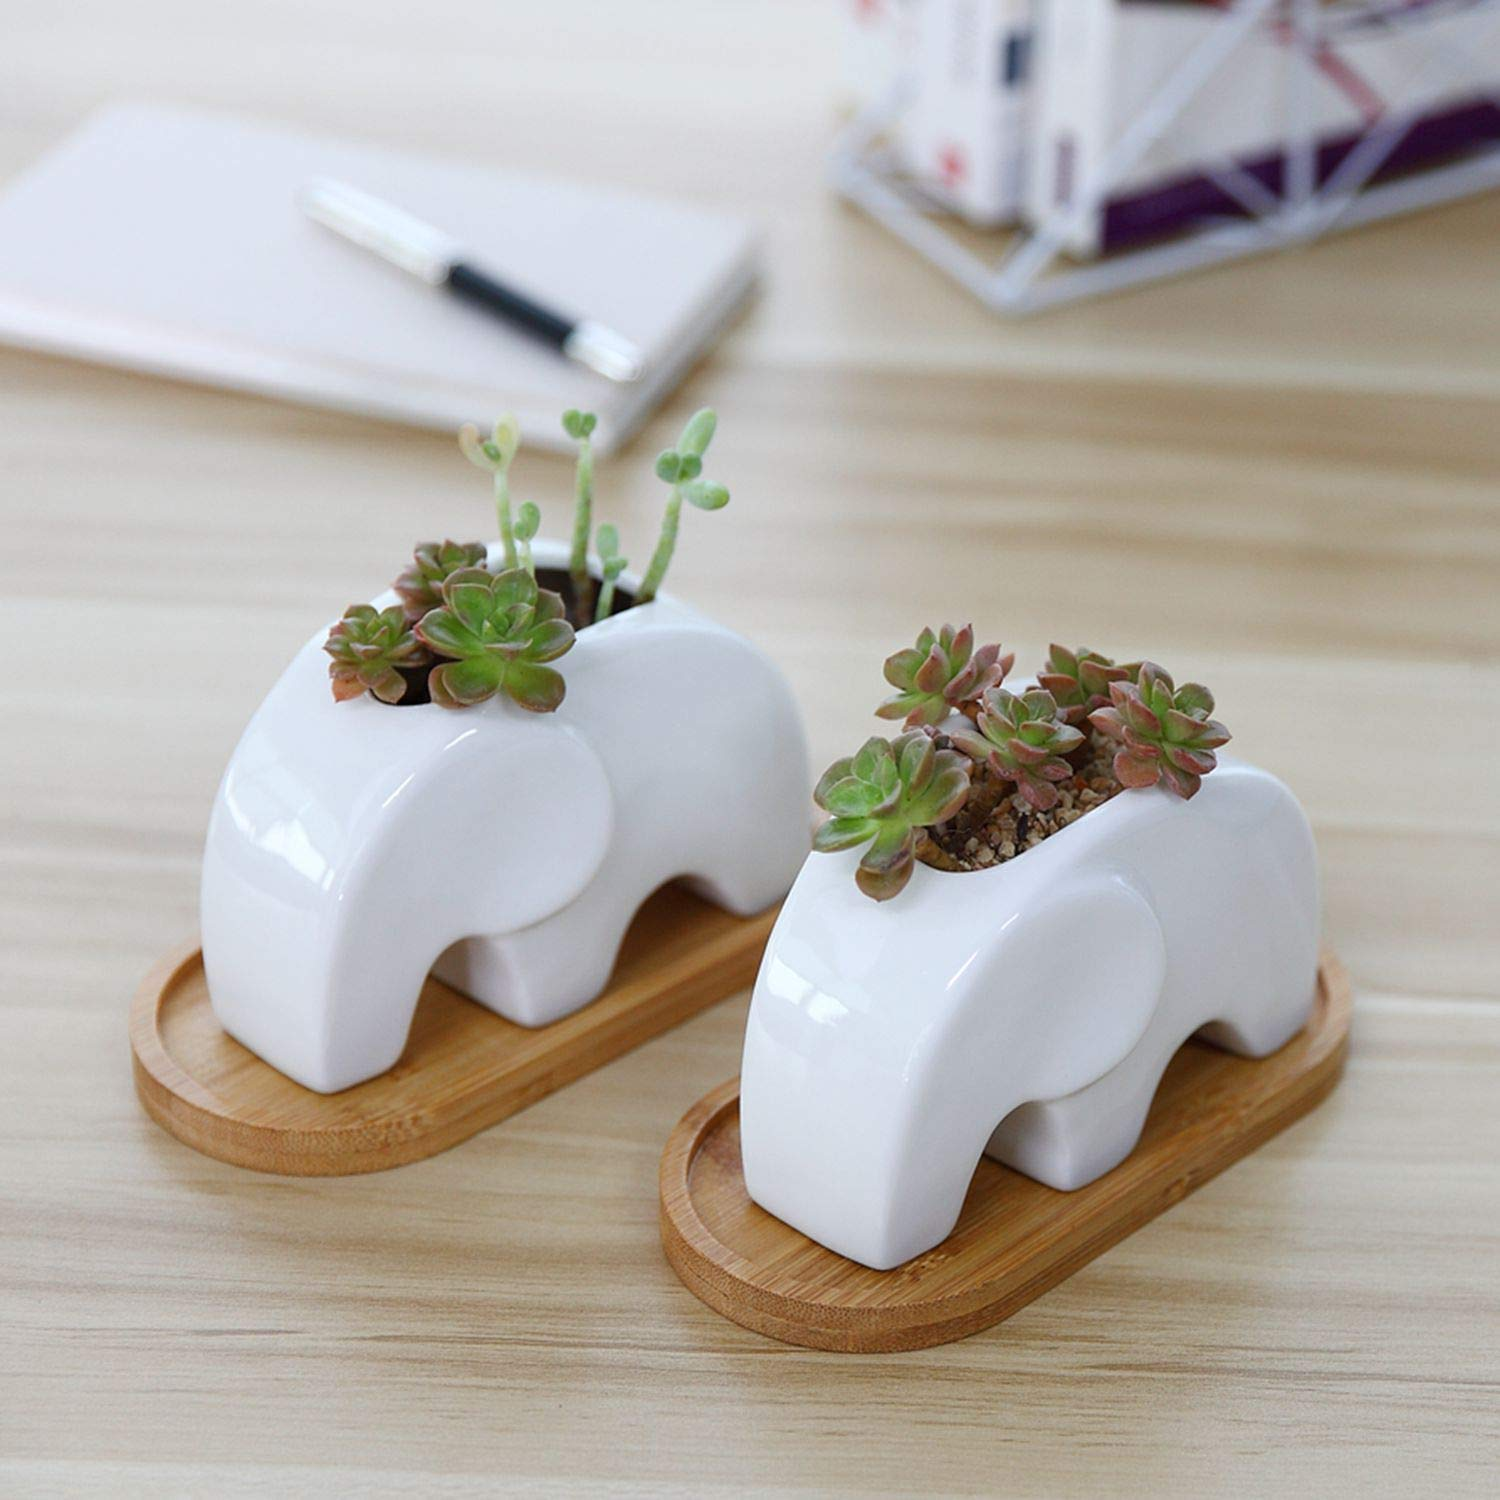 T4U Succulent Plant Pot Cactus Ceramic Planter with Bamboo Tray Pack of 2-4.8'' Elephant, Small Container White Animal Window Box Decorative Ornament Office Desktop Wedding Birthday by T4U (Image #4)